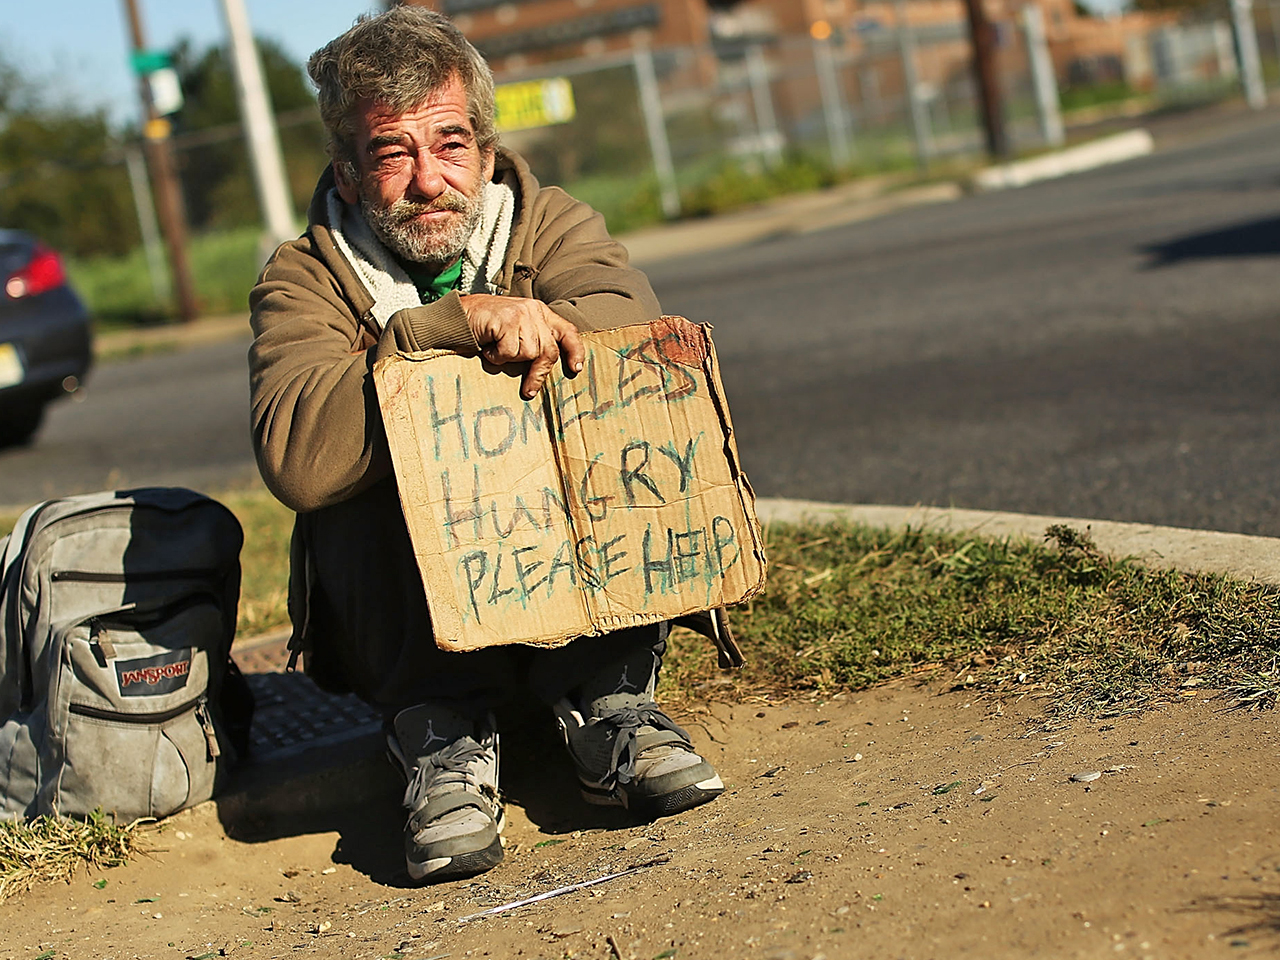 Poverty problem in the united states of america essay